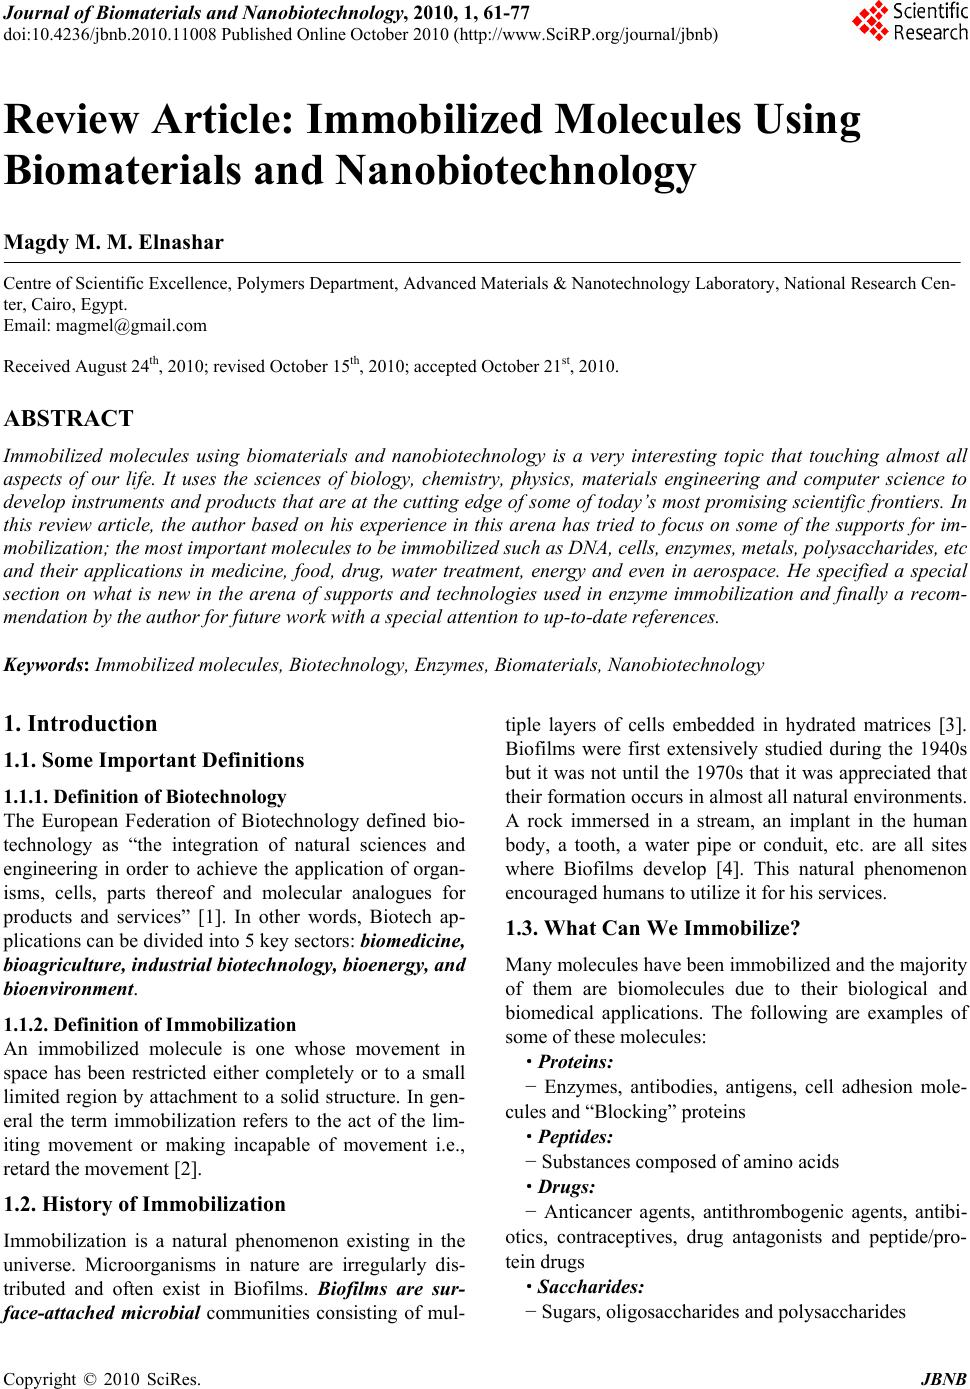 Biomaterial engineering research paper